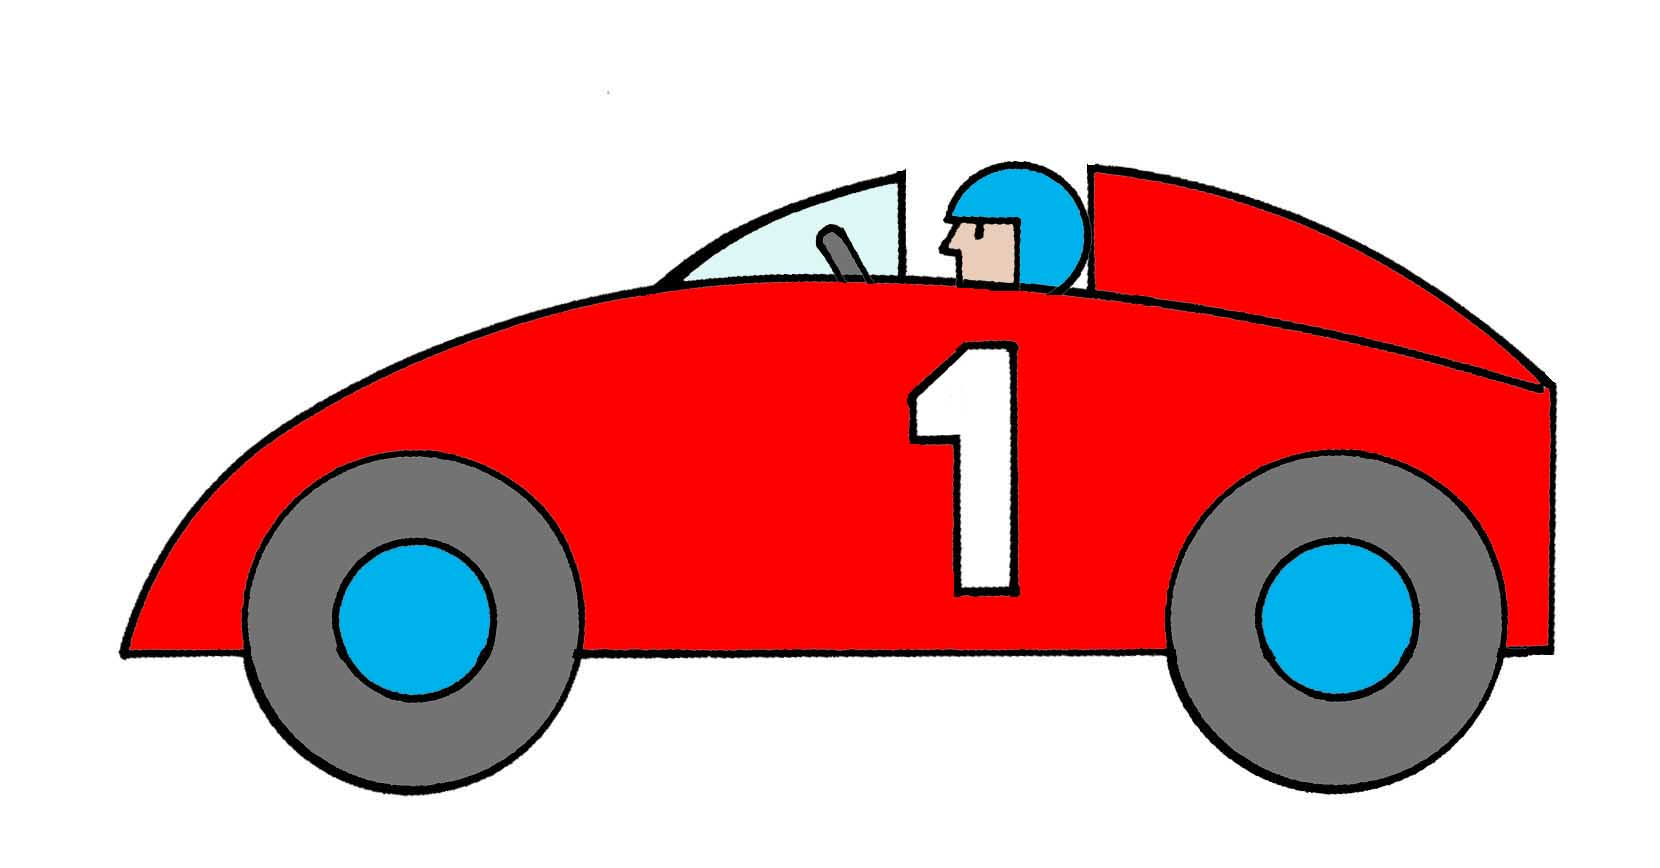 Race car clipart 2.